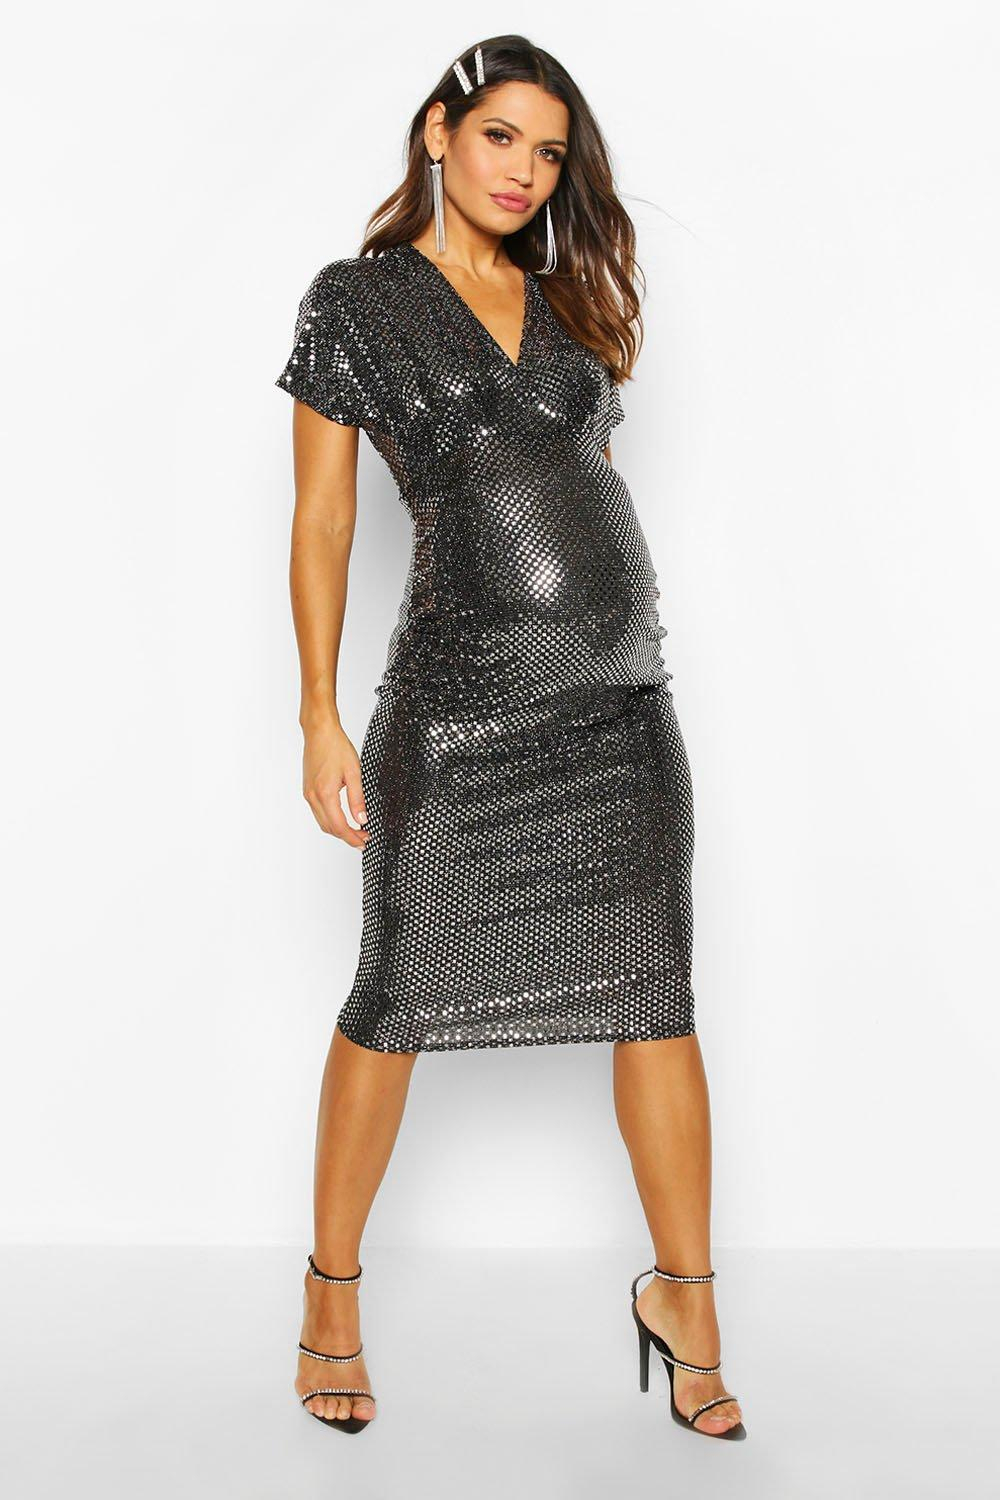 Vintage Maternity Clothes History Womens Maternity Batwing Stretch Sequin Midi Dress - grey - 12 $18.00 AT vintagedancer.com